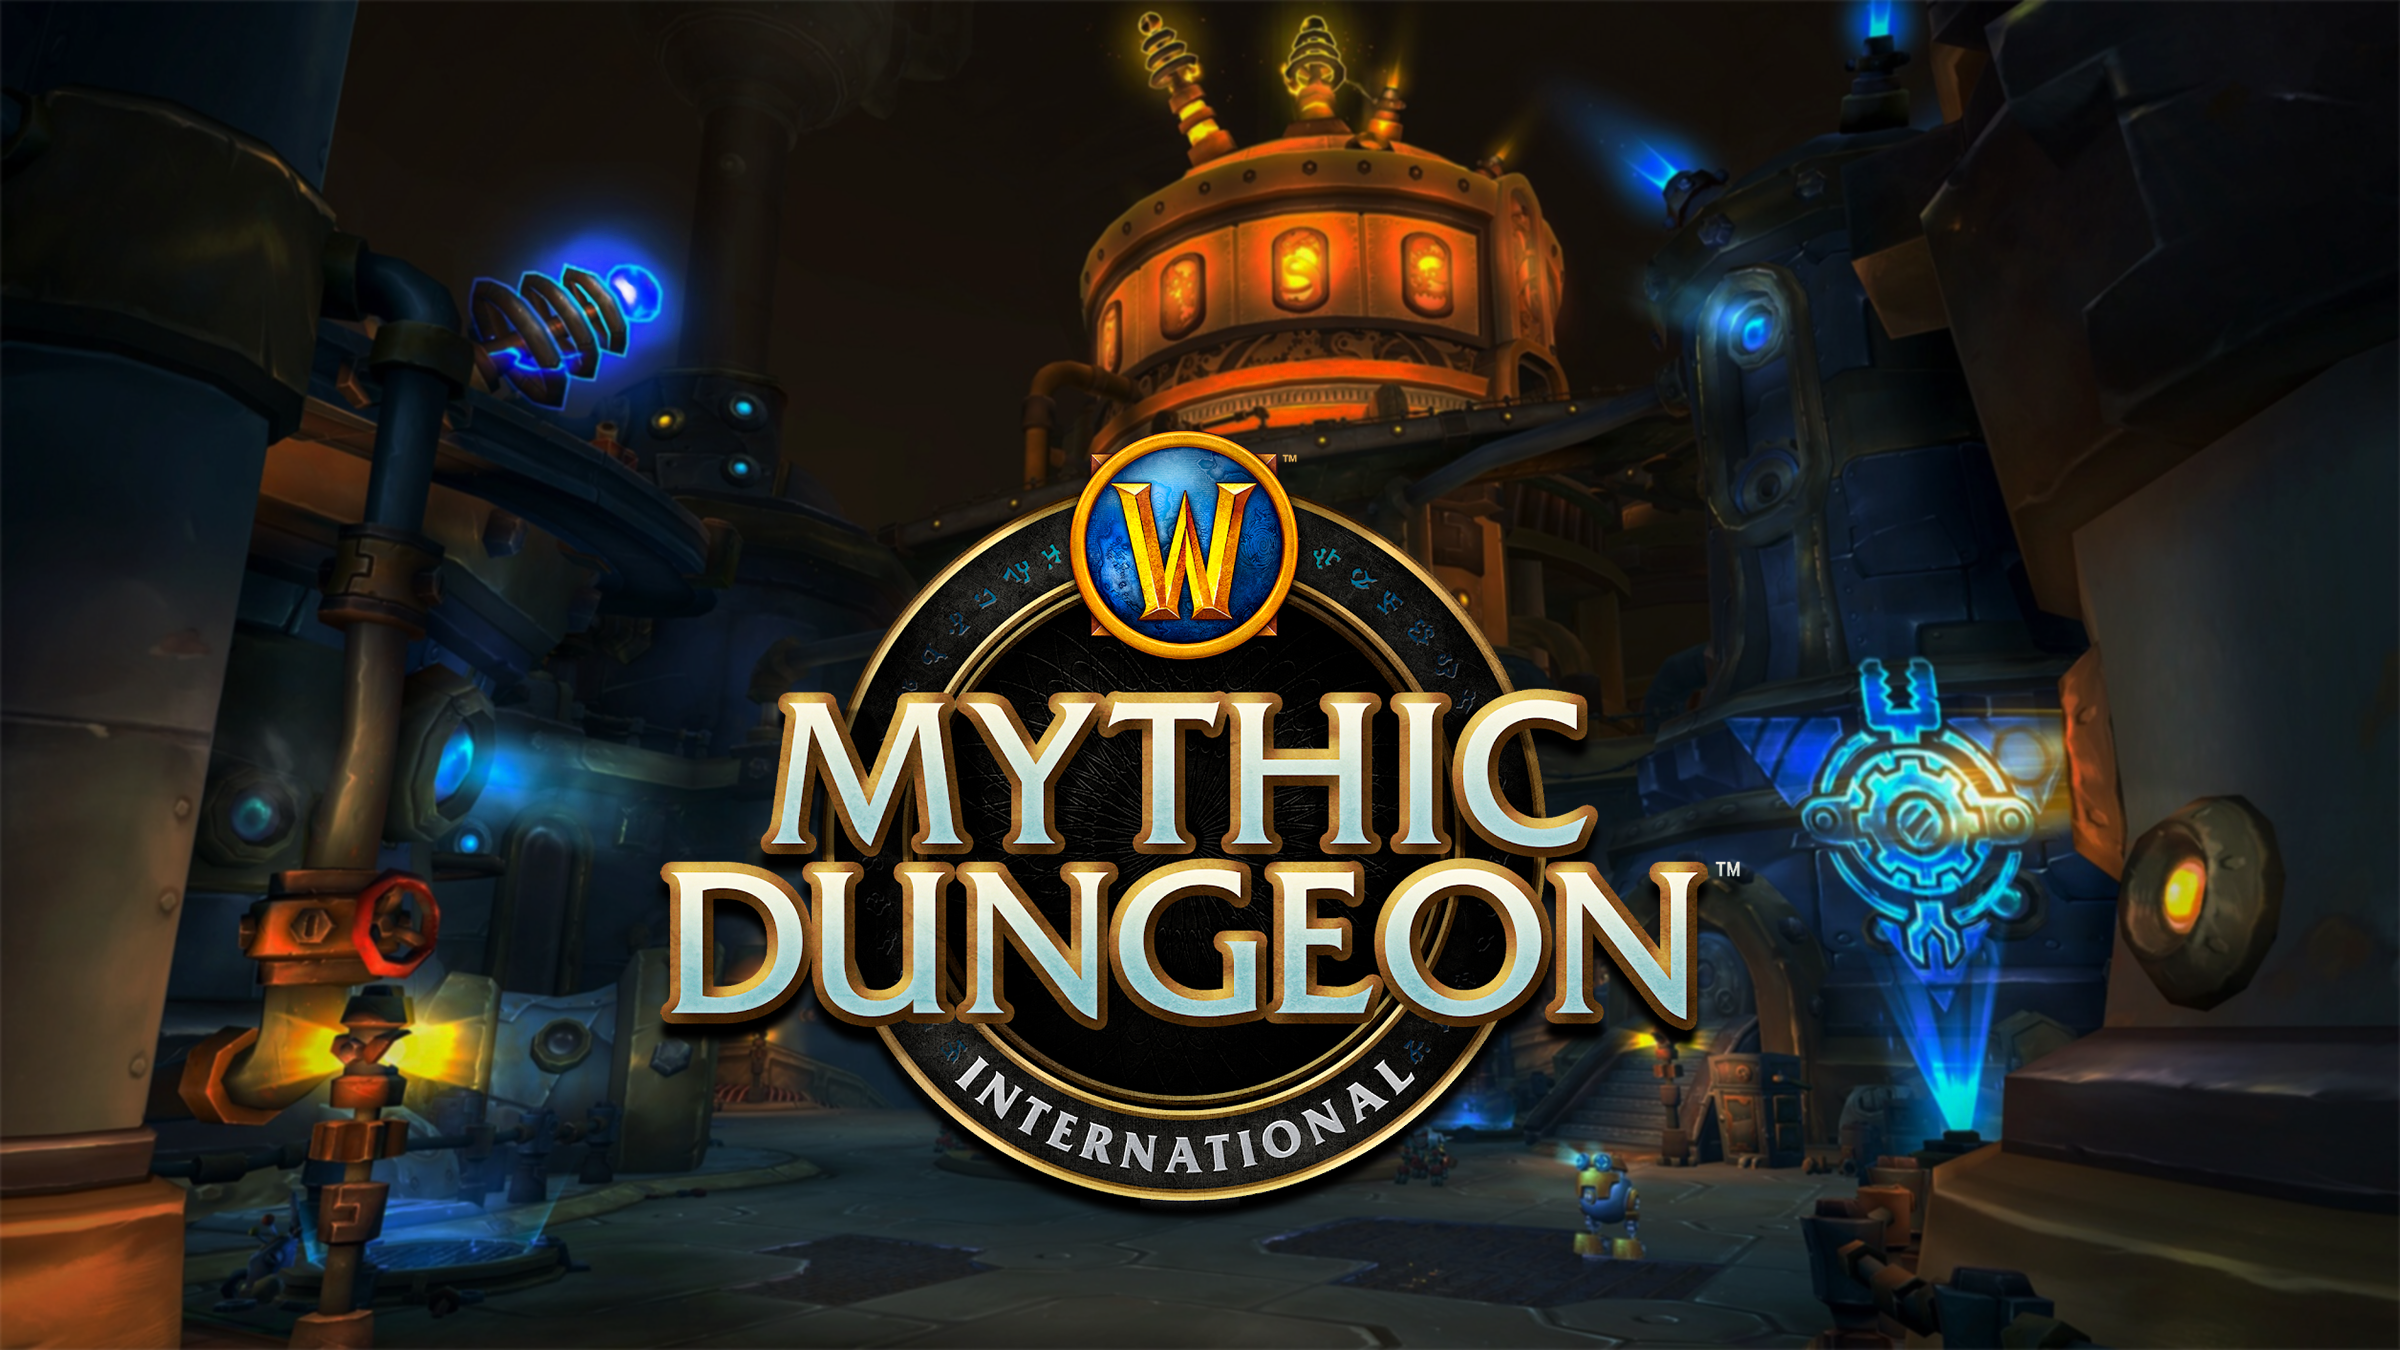 Guida alla visione: Mythic Dungeon International 2020